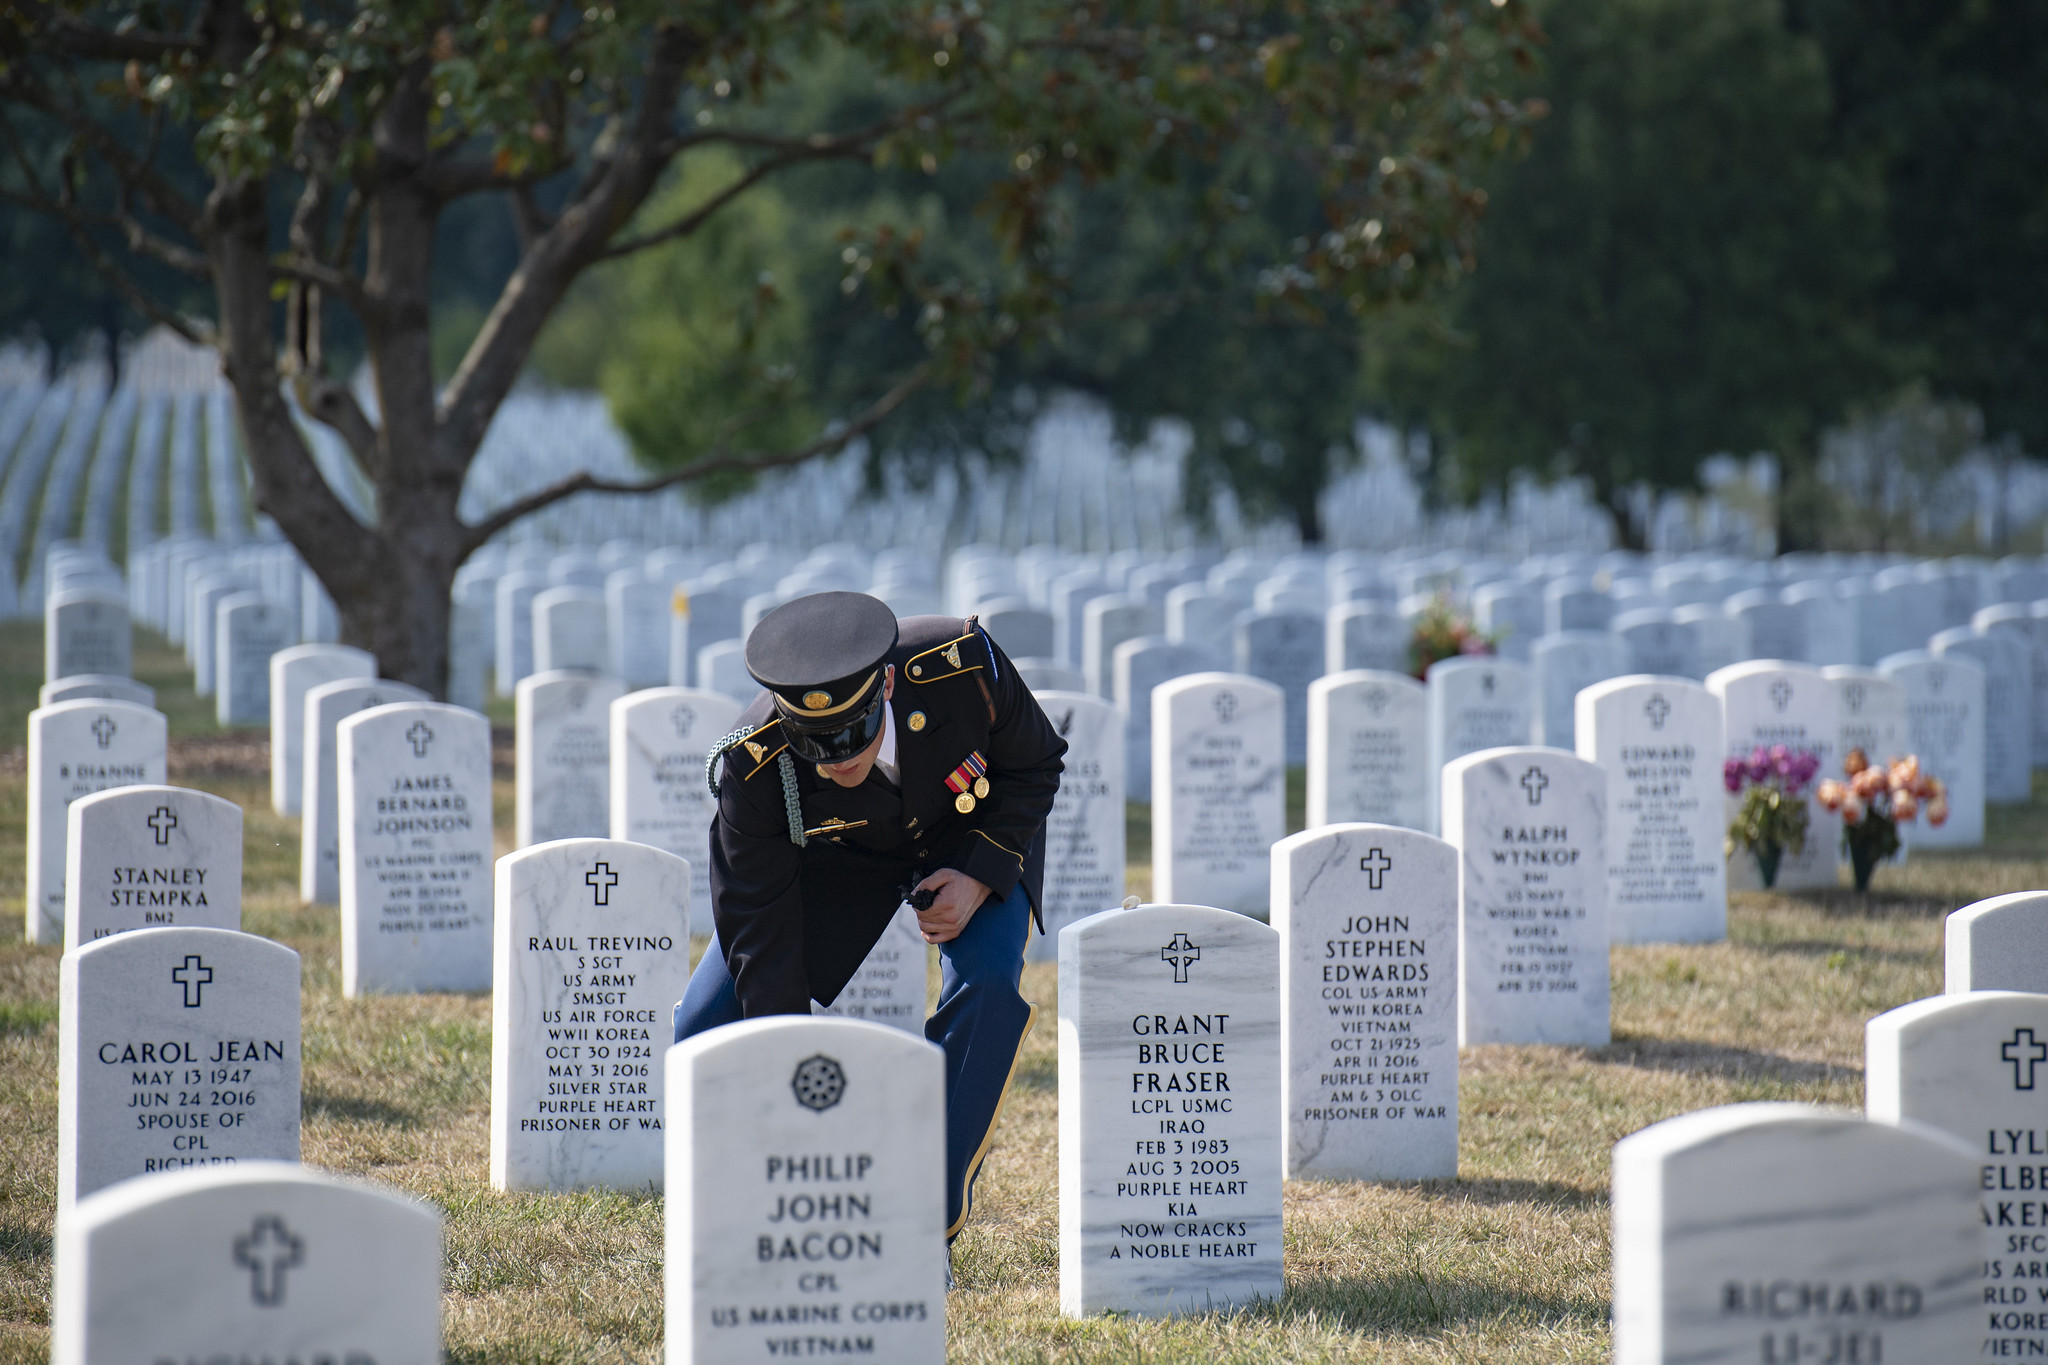 A uniformed soldier kneels before a gravestone at Arlington National Cemetery